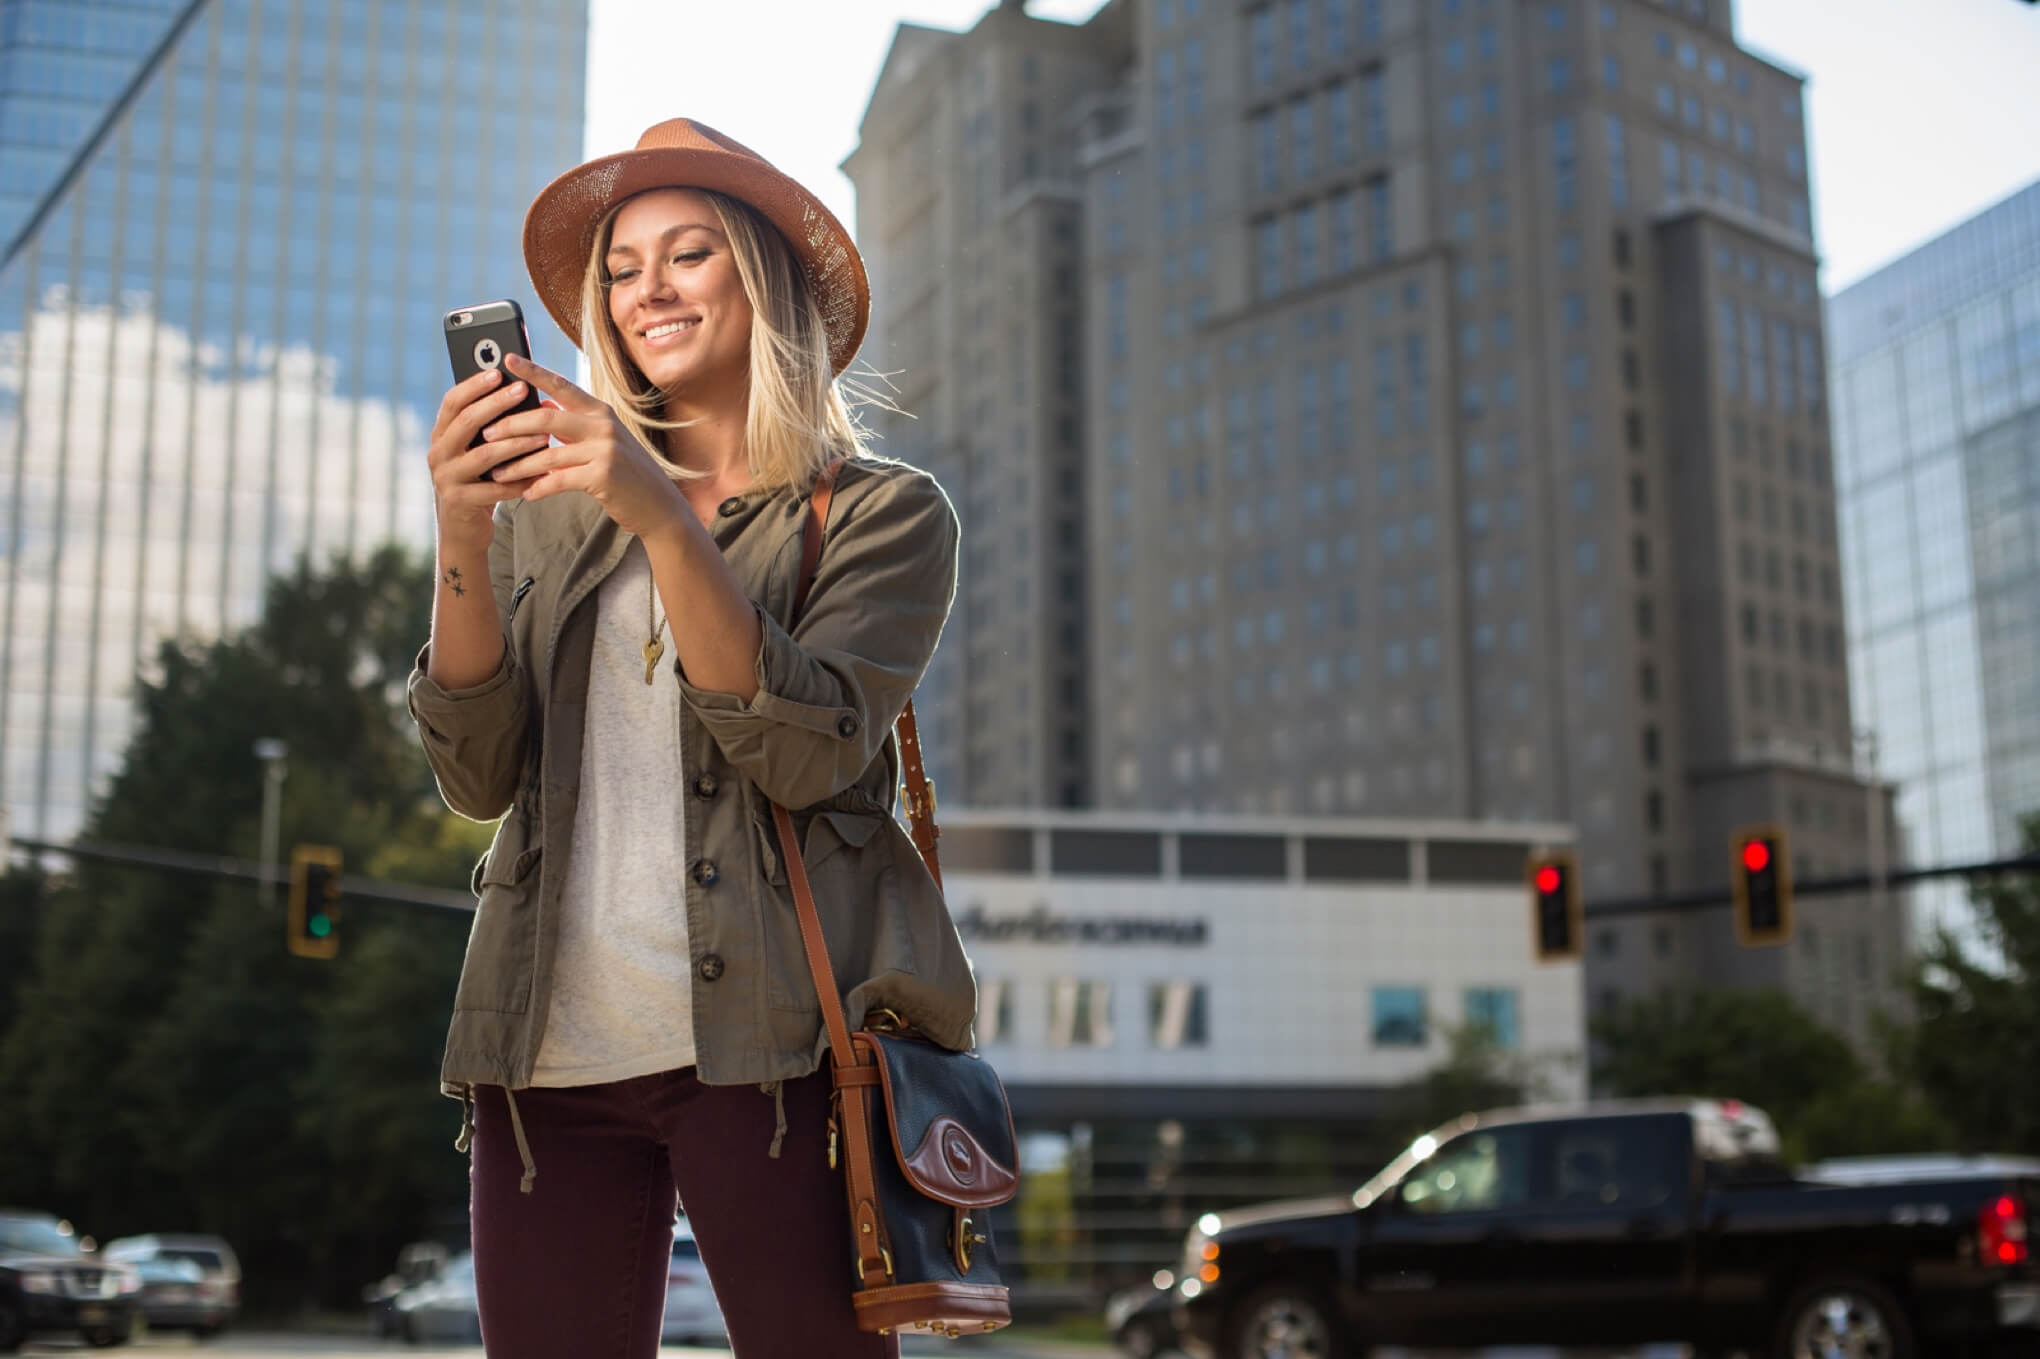 A Woman holds a smart phone with downtown scenery in the background